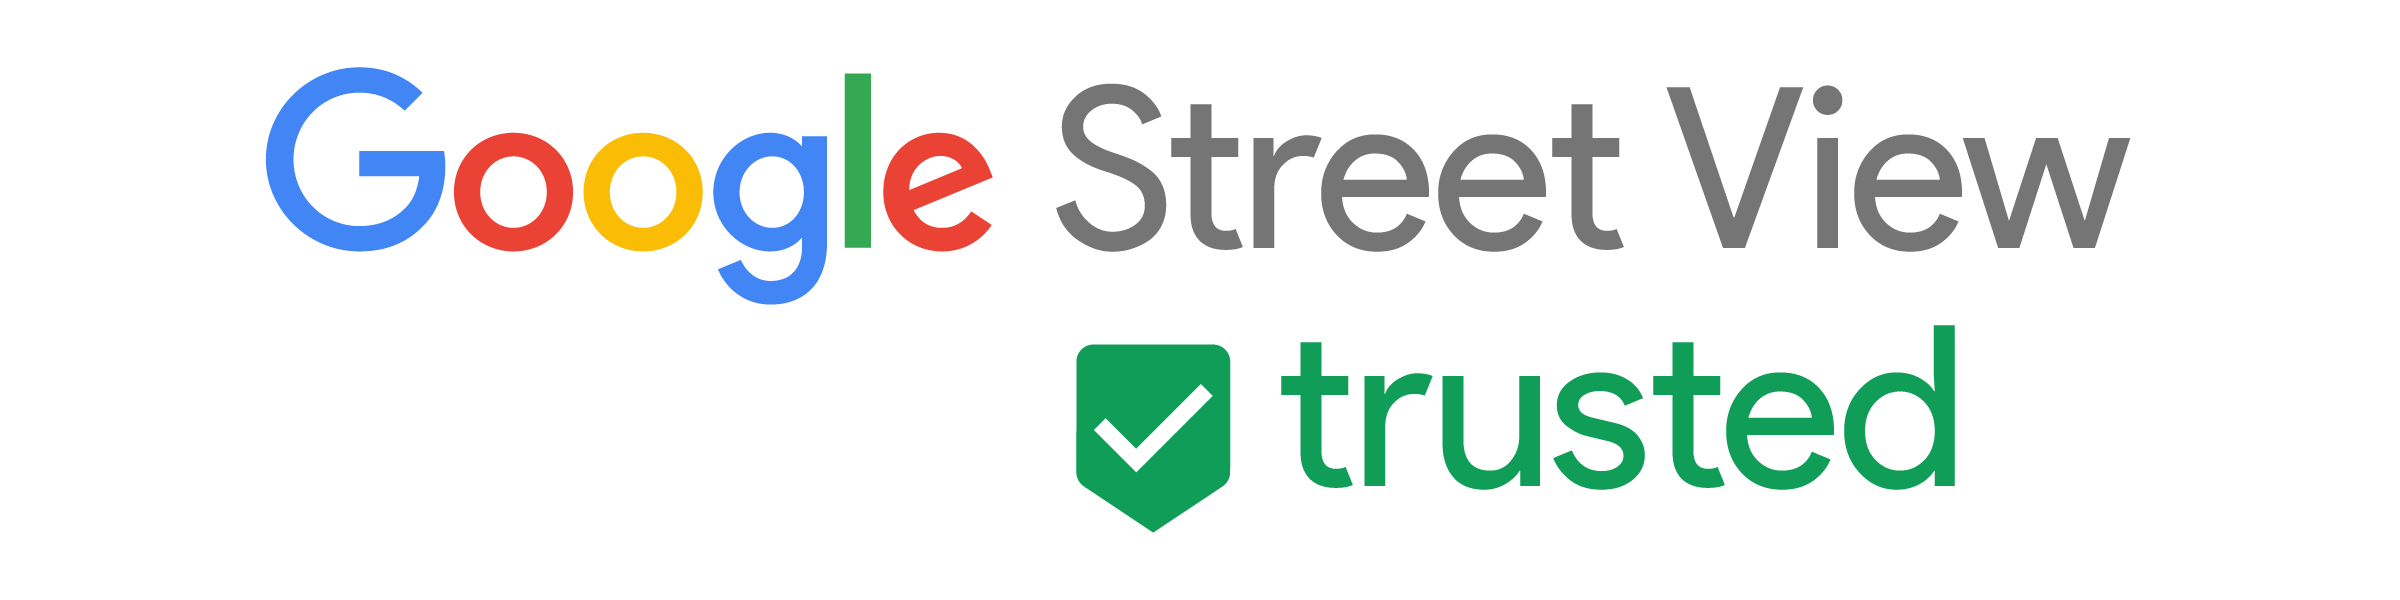 Google Street View Trsuted Photography badge